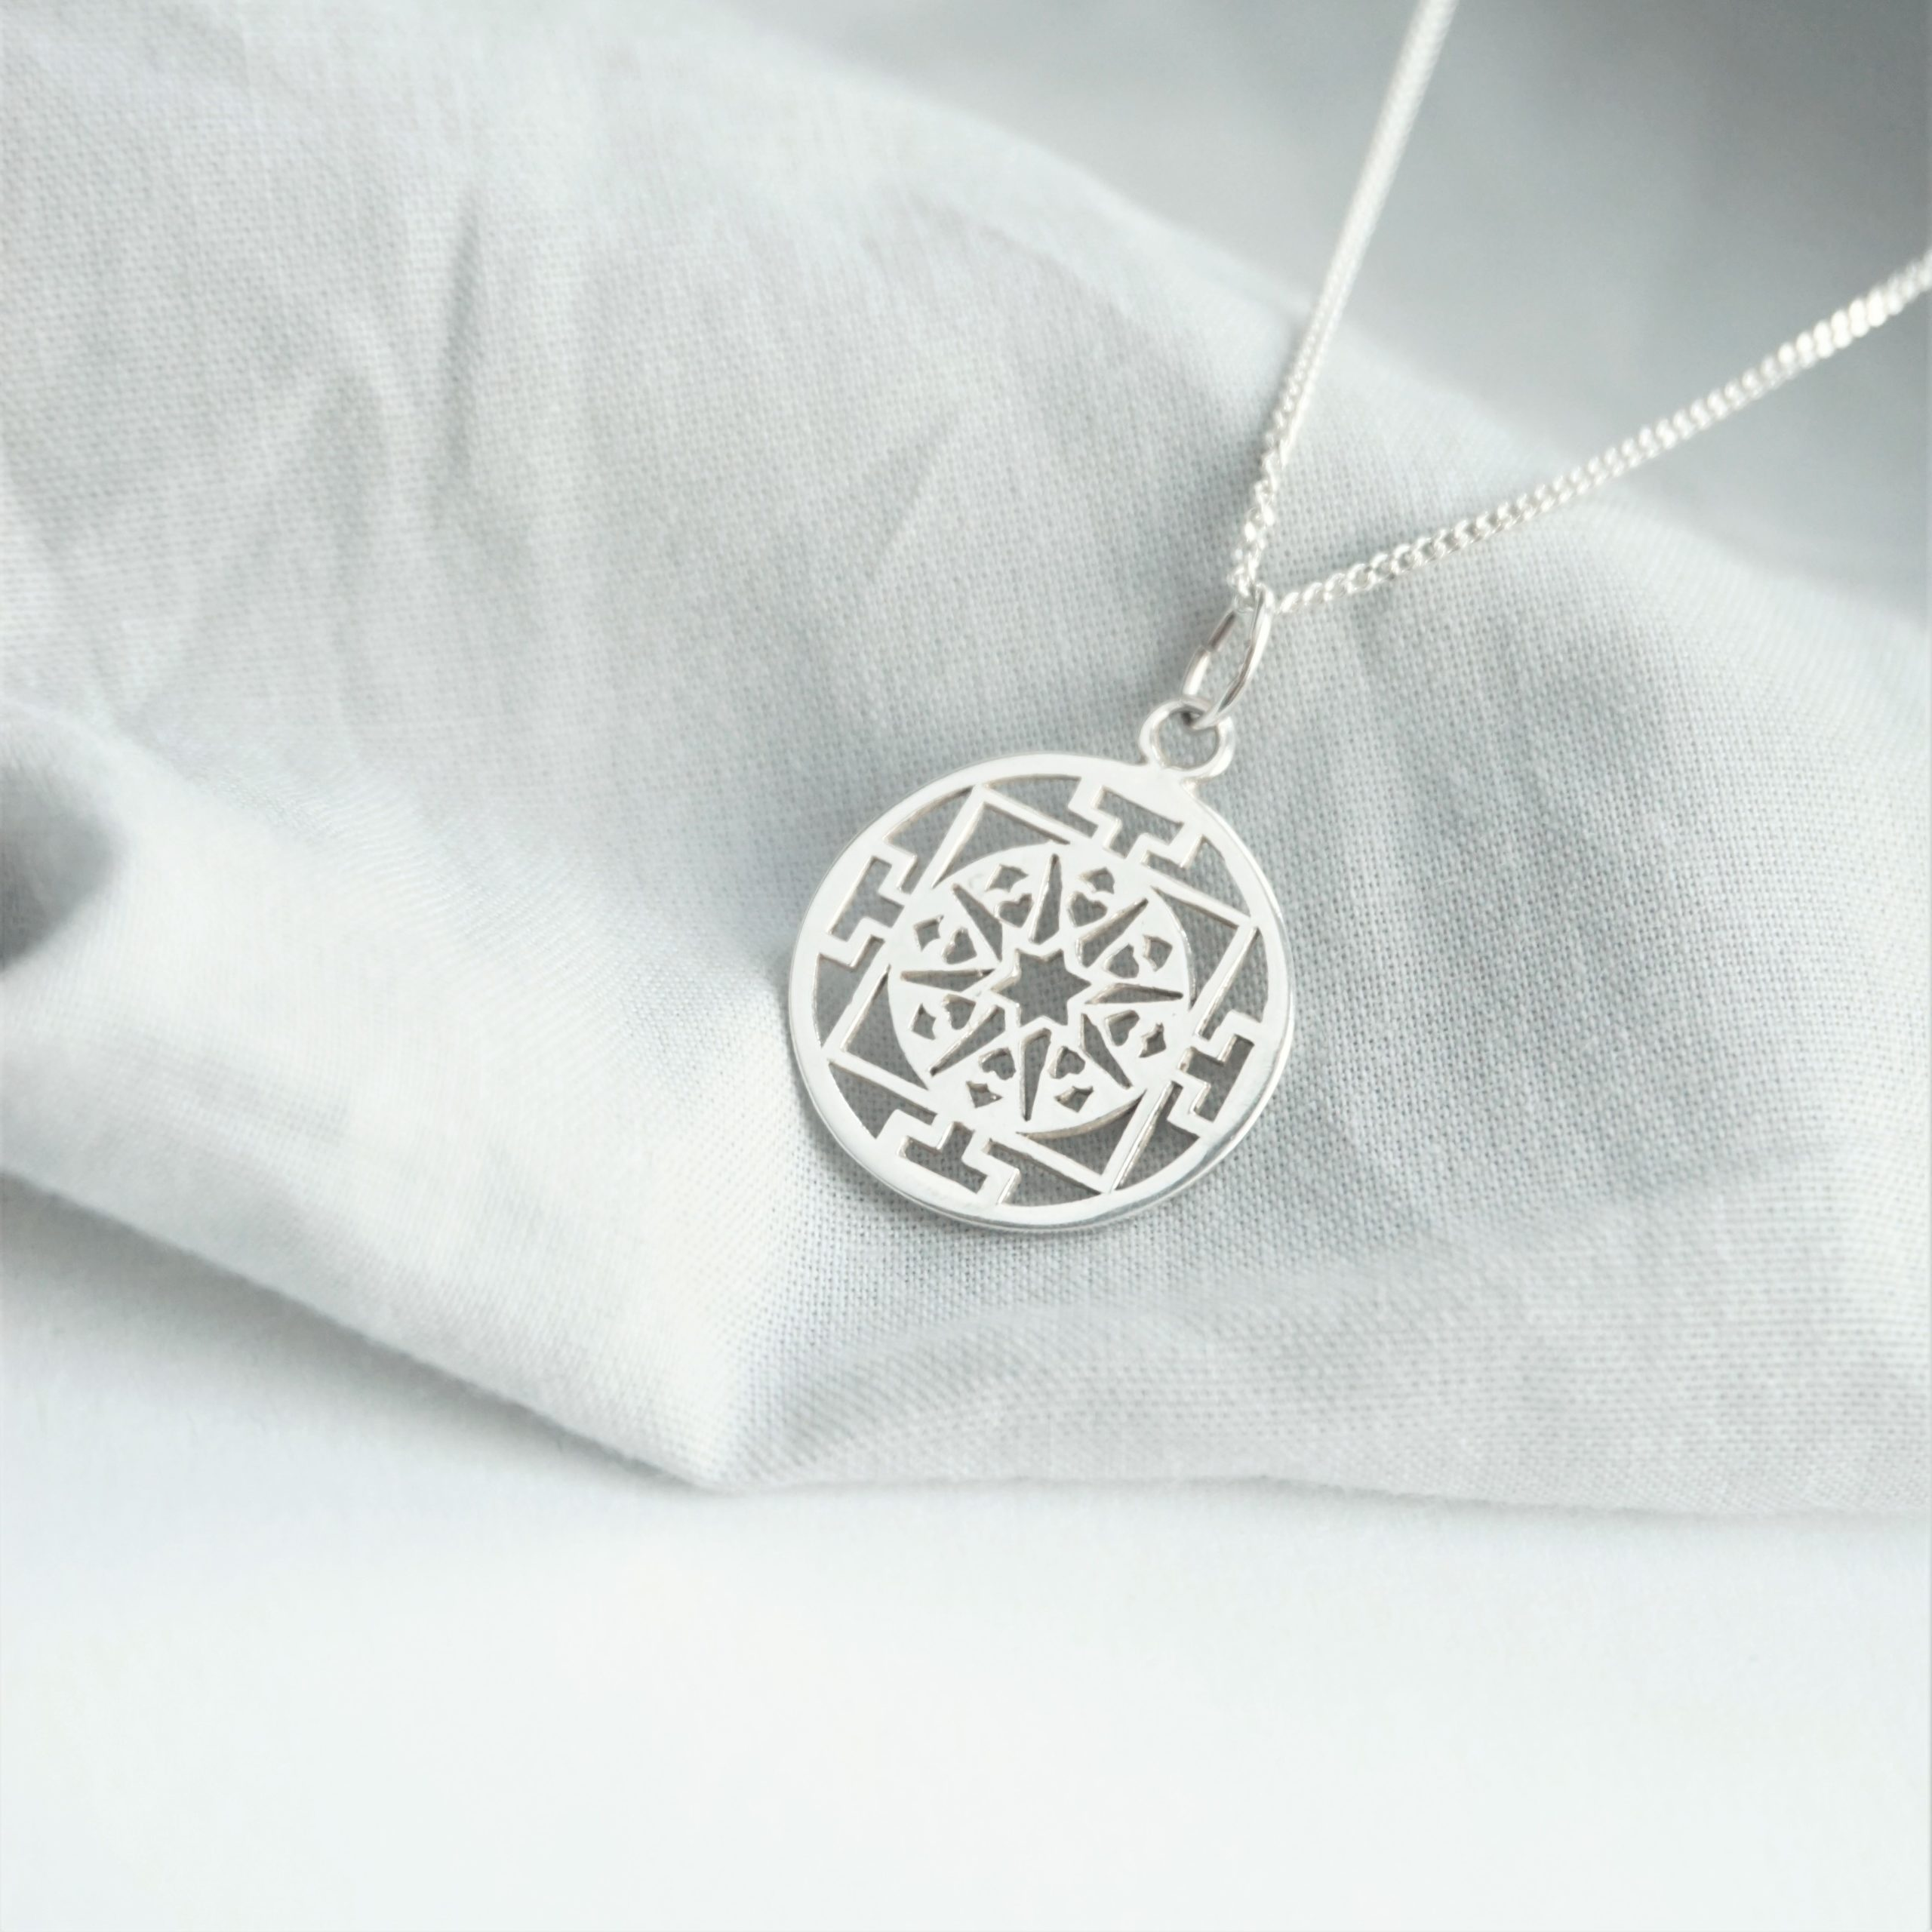 sterling silver necklace with circular design charm